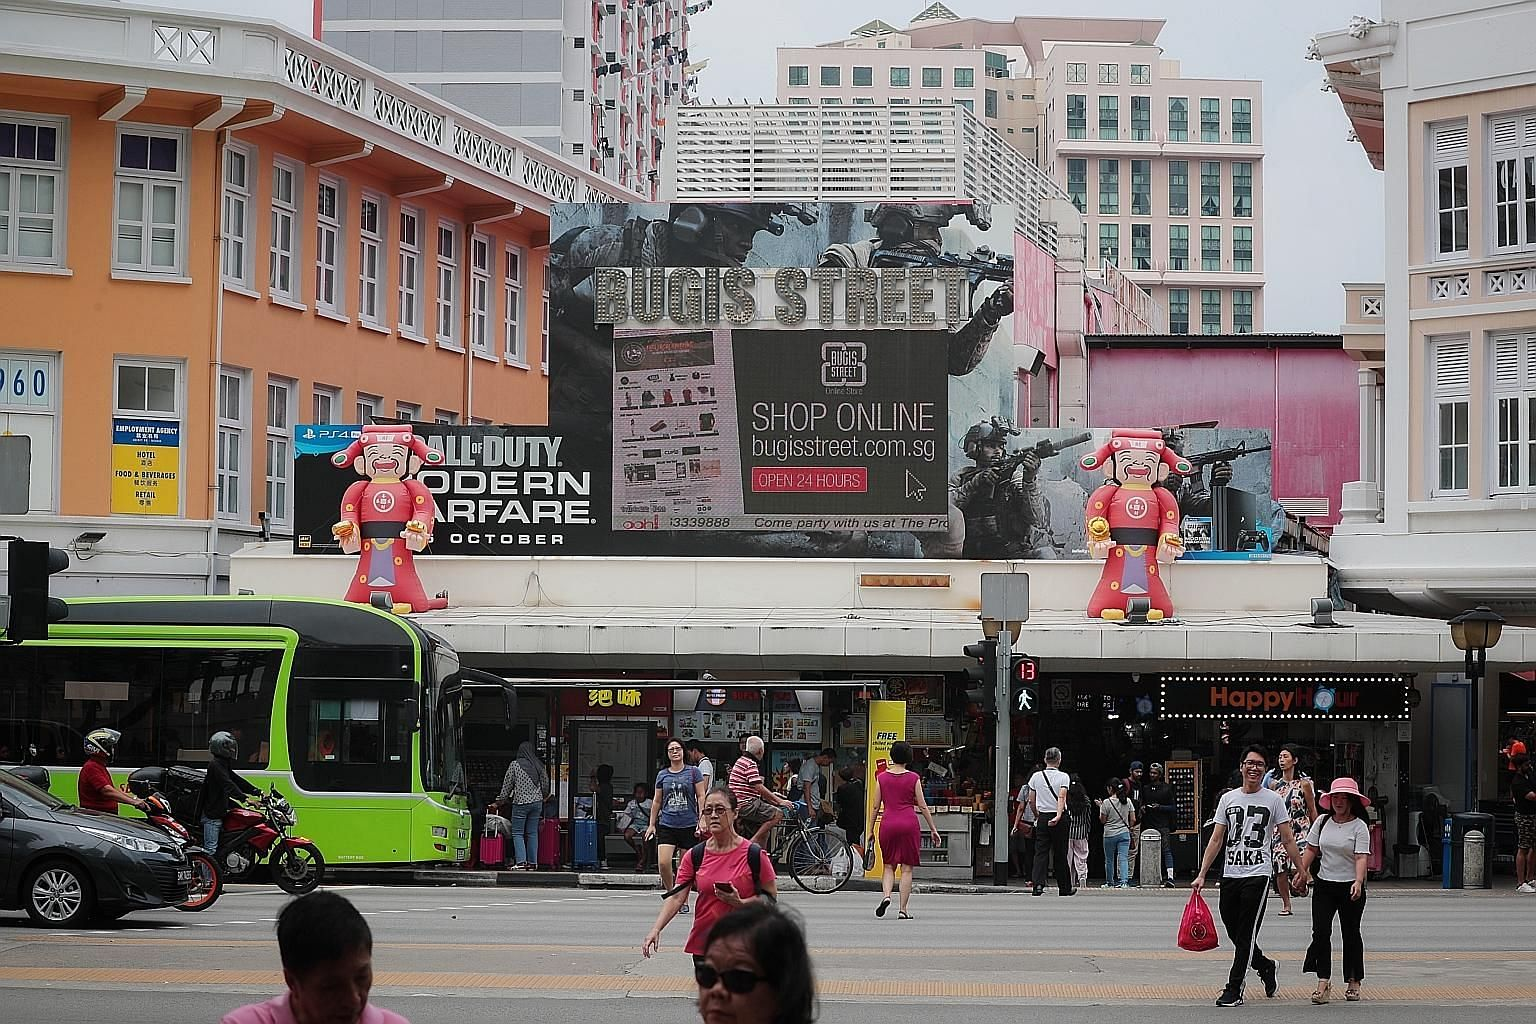 Among the tentative proposals are plans to create open spaces which could serve as retail incubators for established brands and local start-ups. CapitaLand said it has plans to utilise the site's existing shophouses and spiral staircases to boost the